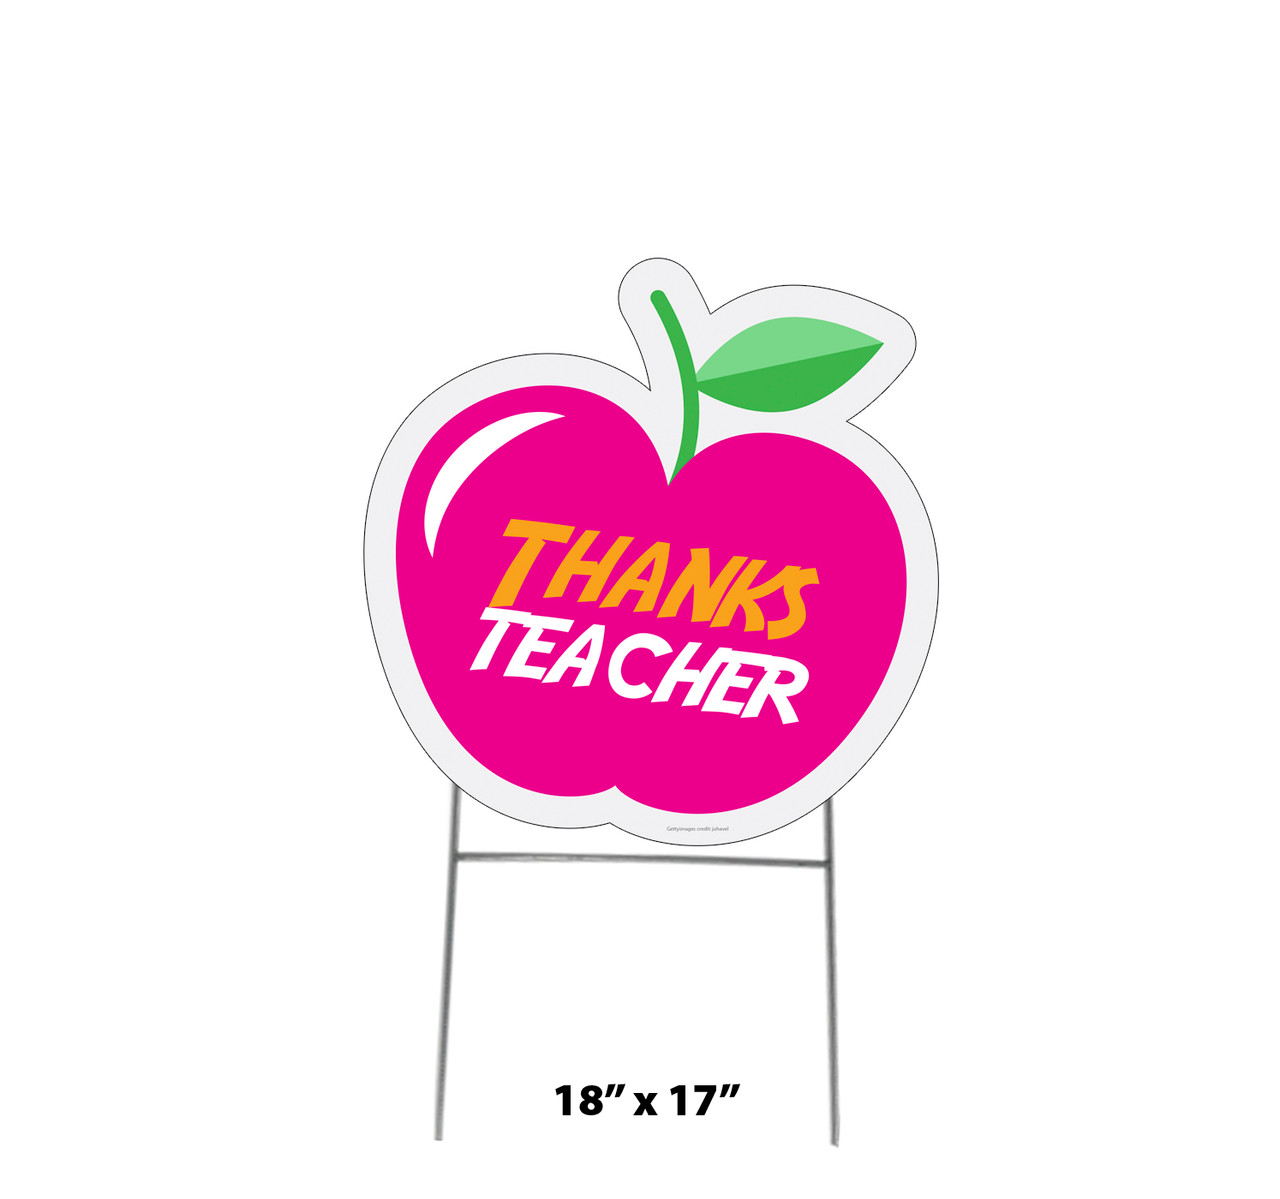 Coroplast outdoor thanks teacher apple yard sign with dimensions.